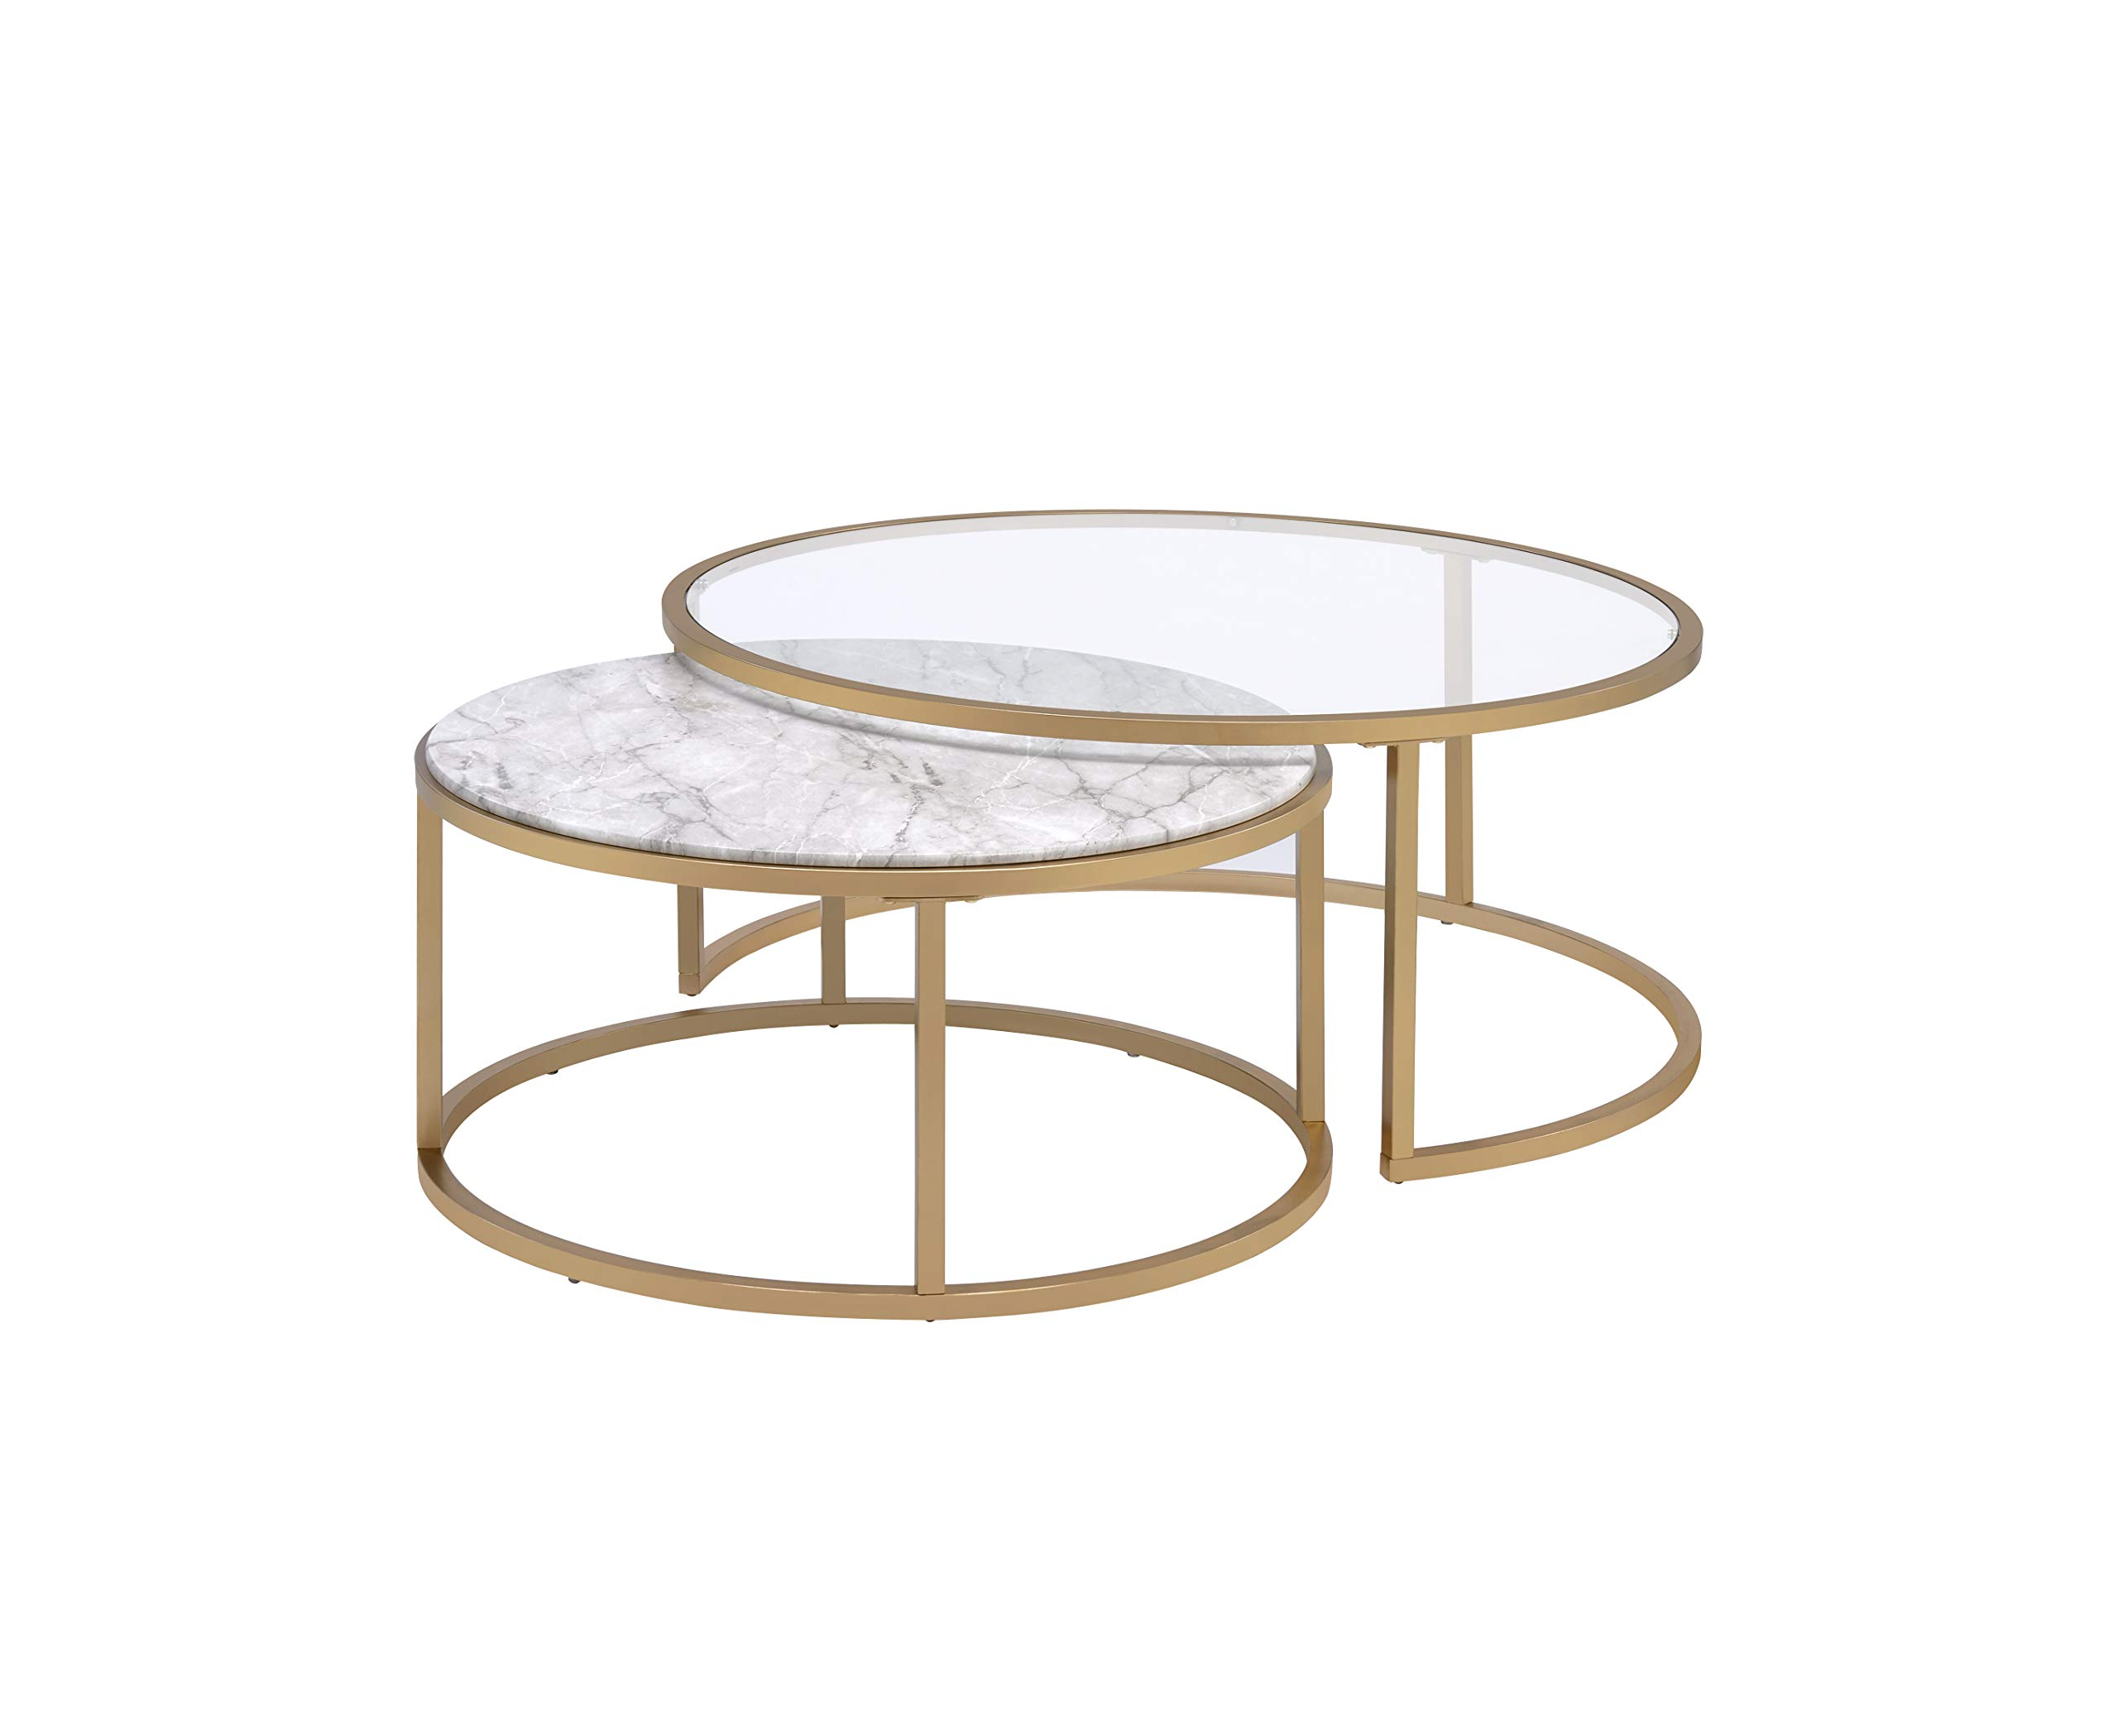 Acme Furniture 2-Pc Nesting Table Set in Faux Marble and Gold by Acme Furniture